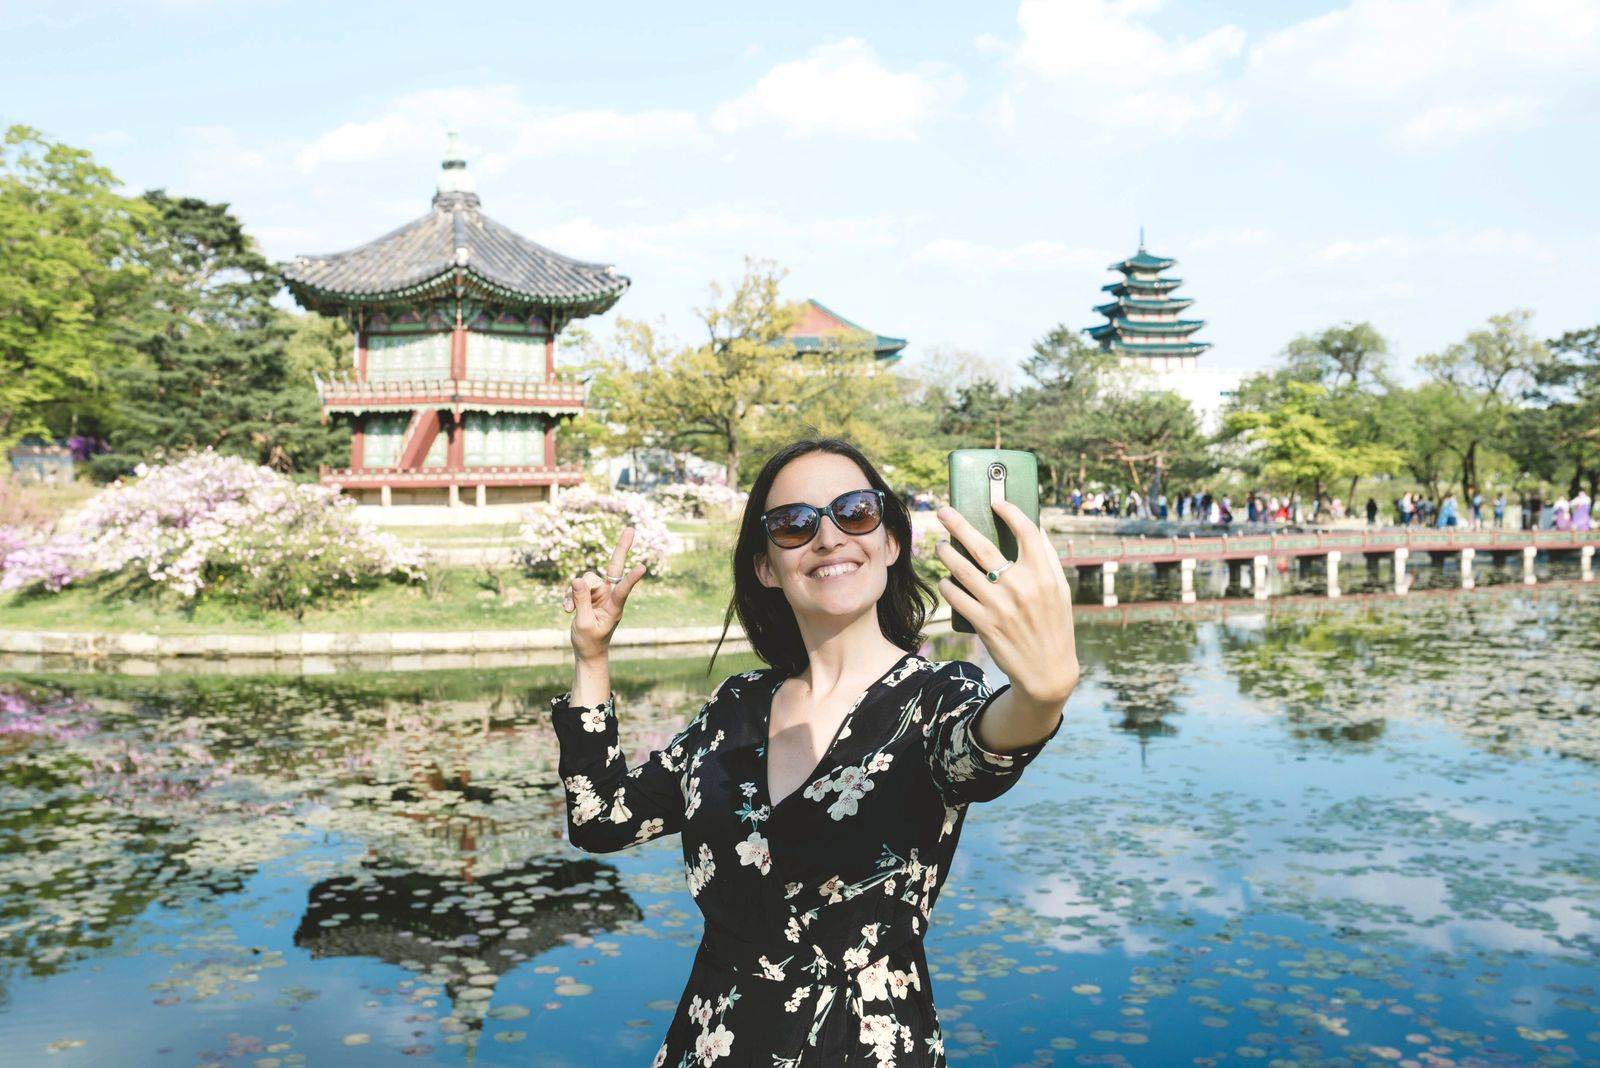 South Korea Seoul Woman taking a selfie with smartphone at Gyeongbokgung Palace model released Symbo